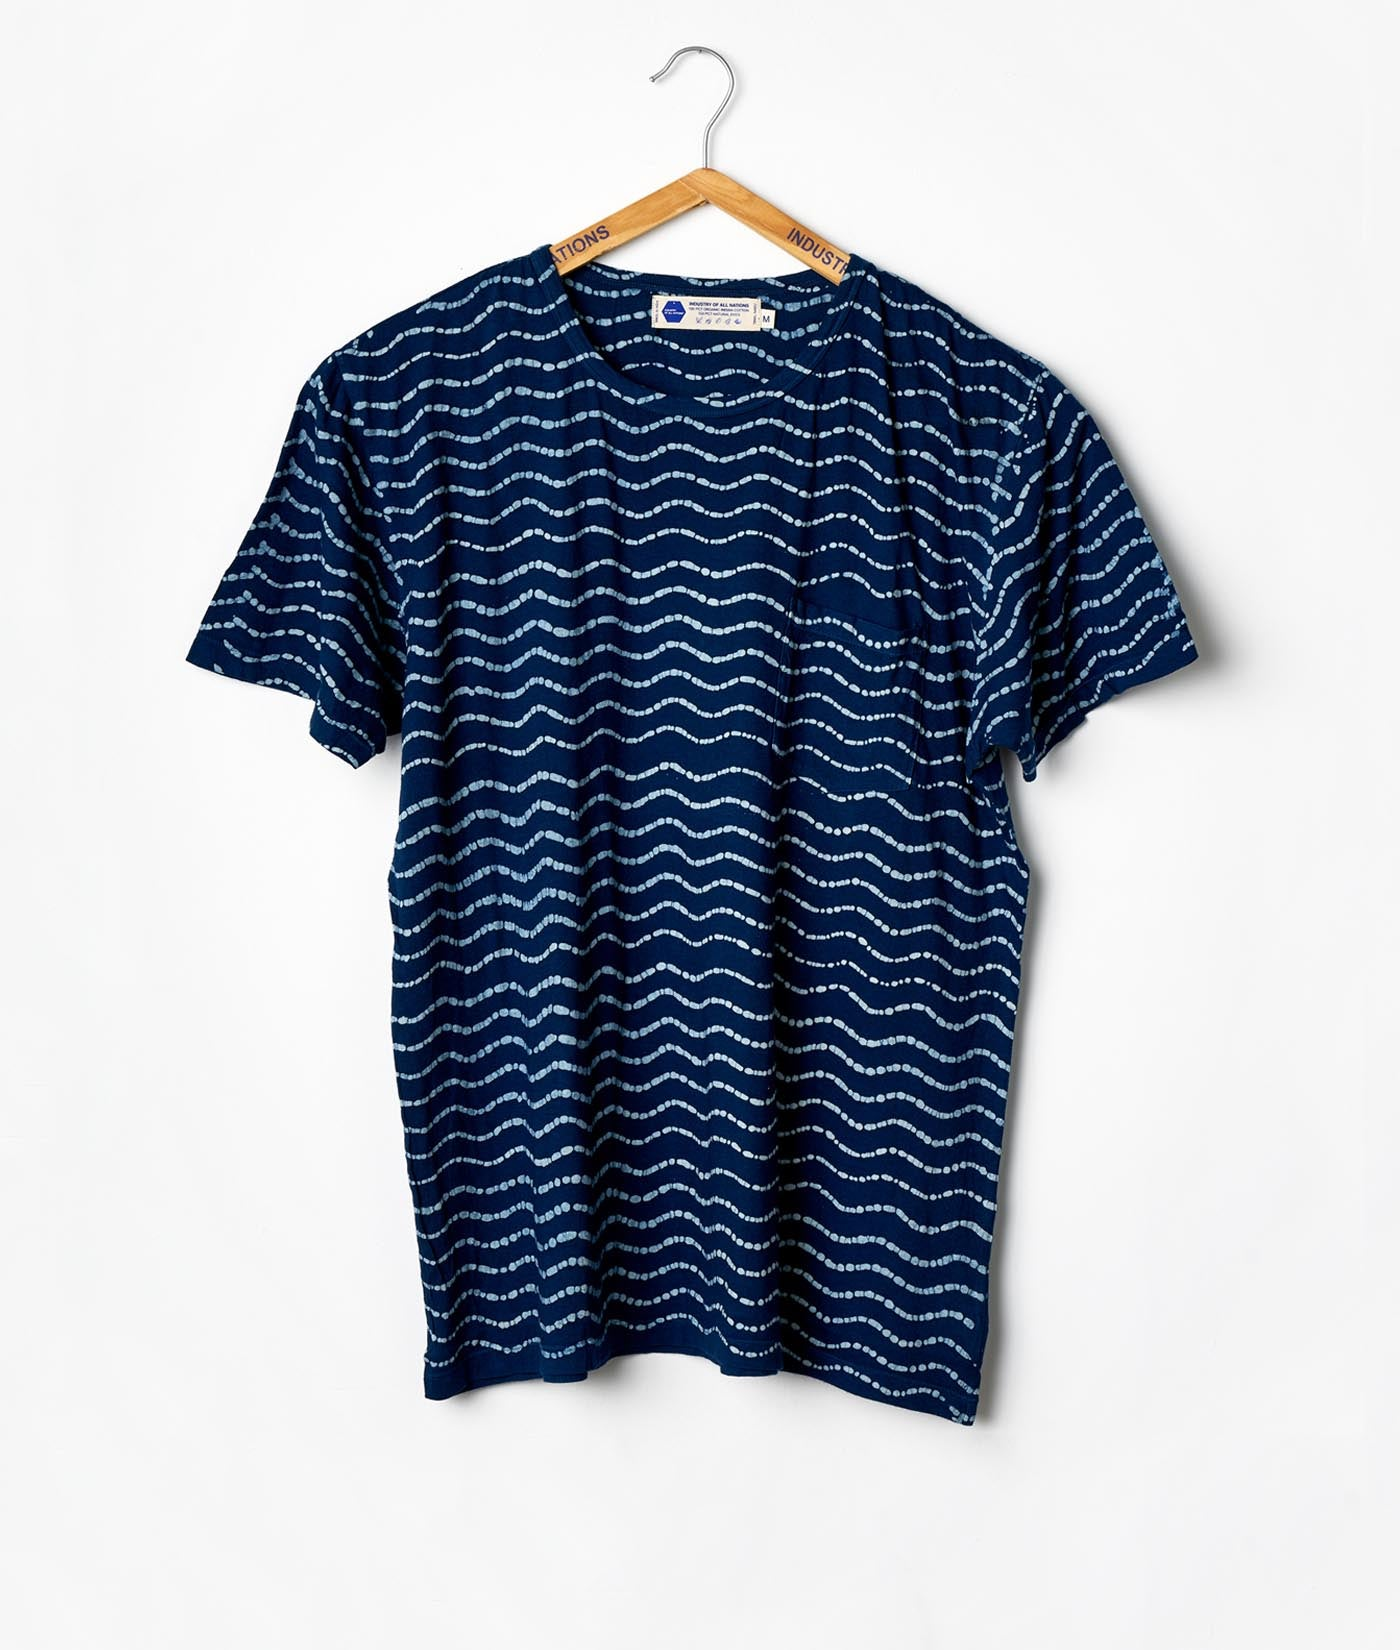 Pocket Crewneck T-shirt - Batik Waves